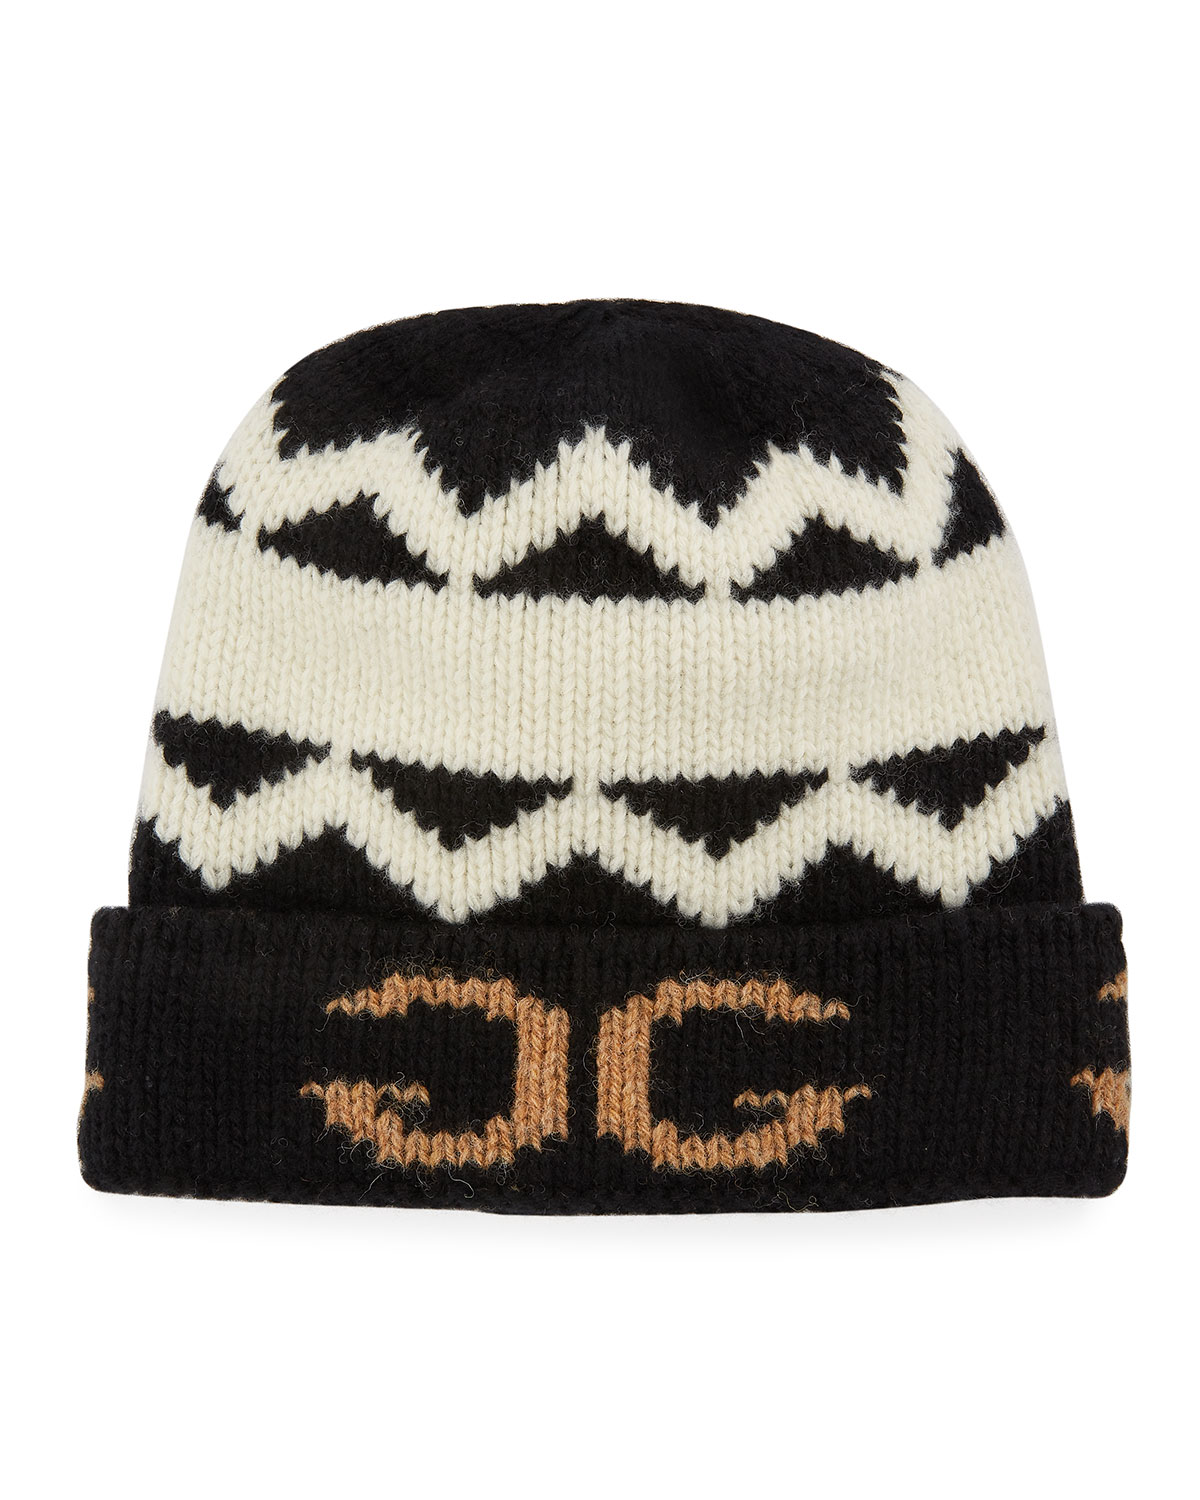 Gucci Men s Peruss Logo-Knit Beanie Hat  2f434fb07e1